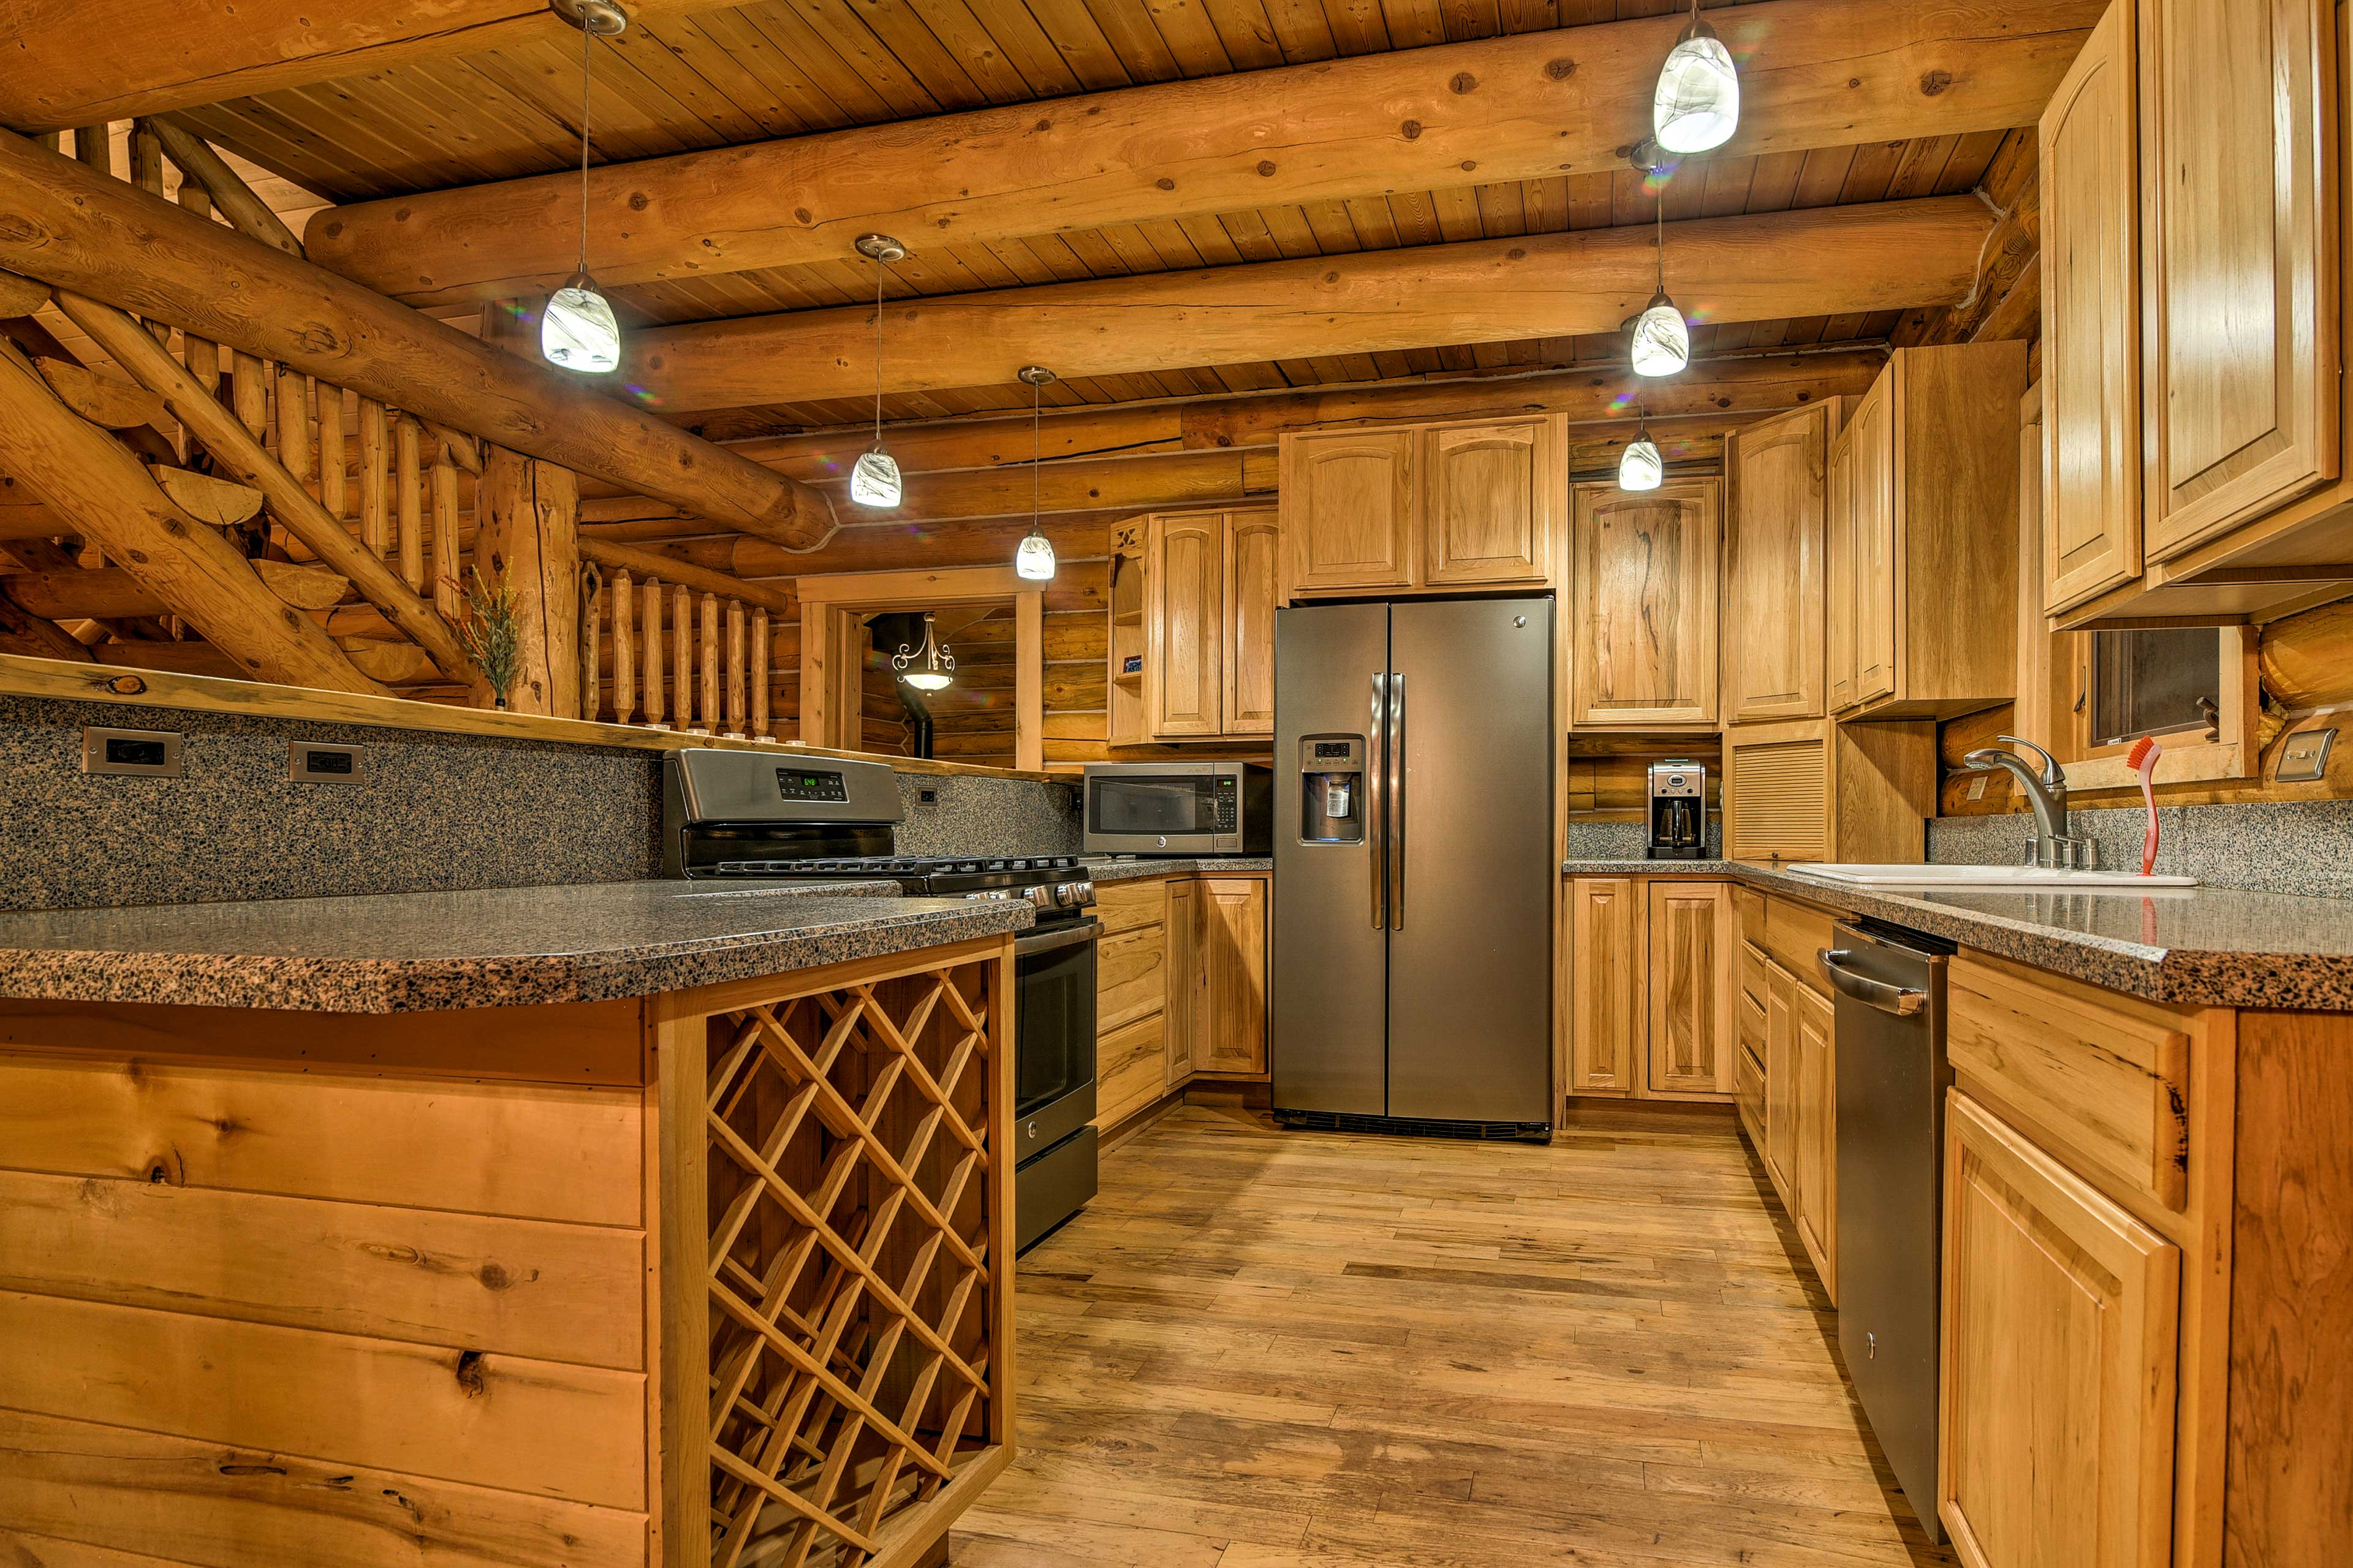 The home offers 2 kitchens in total.